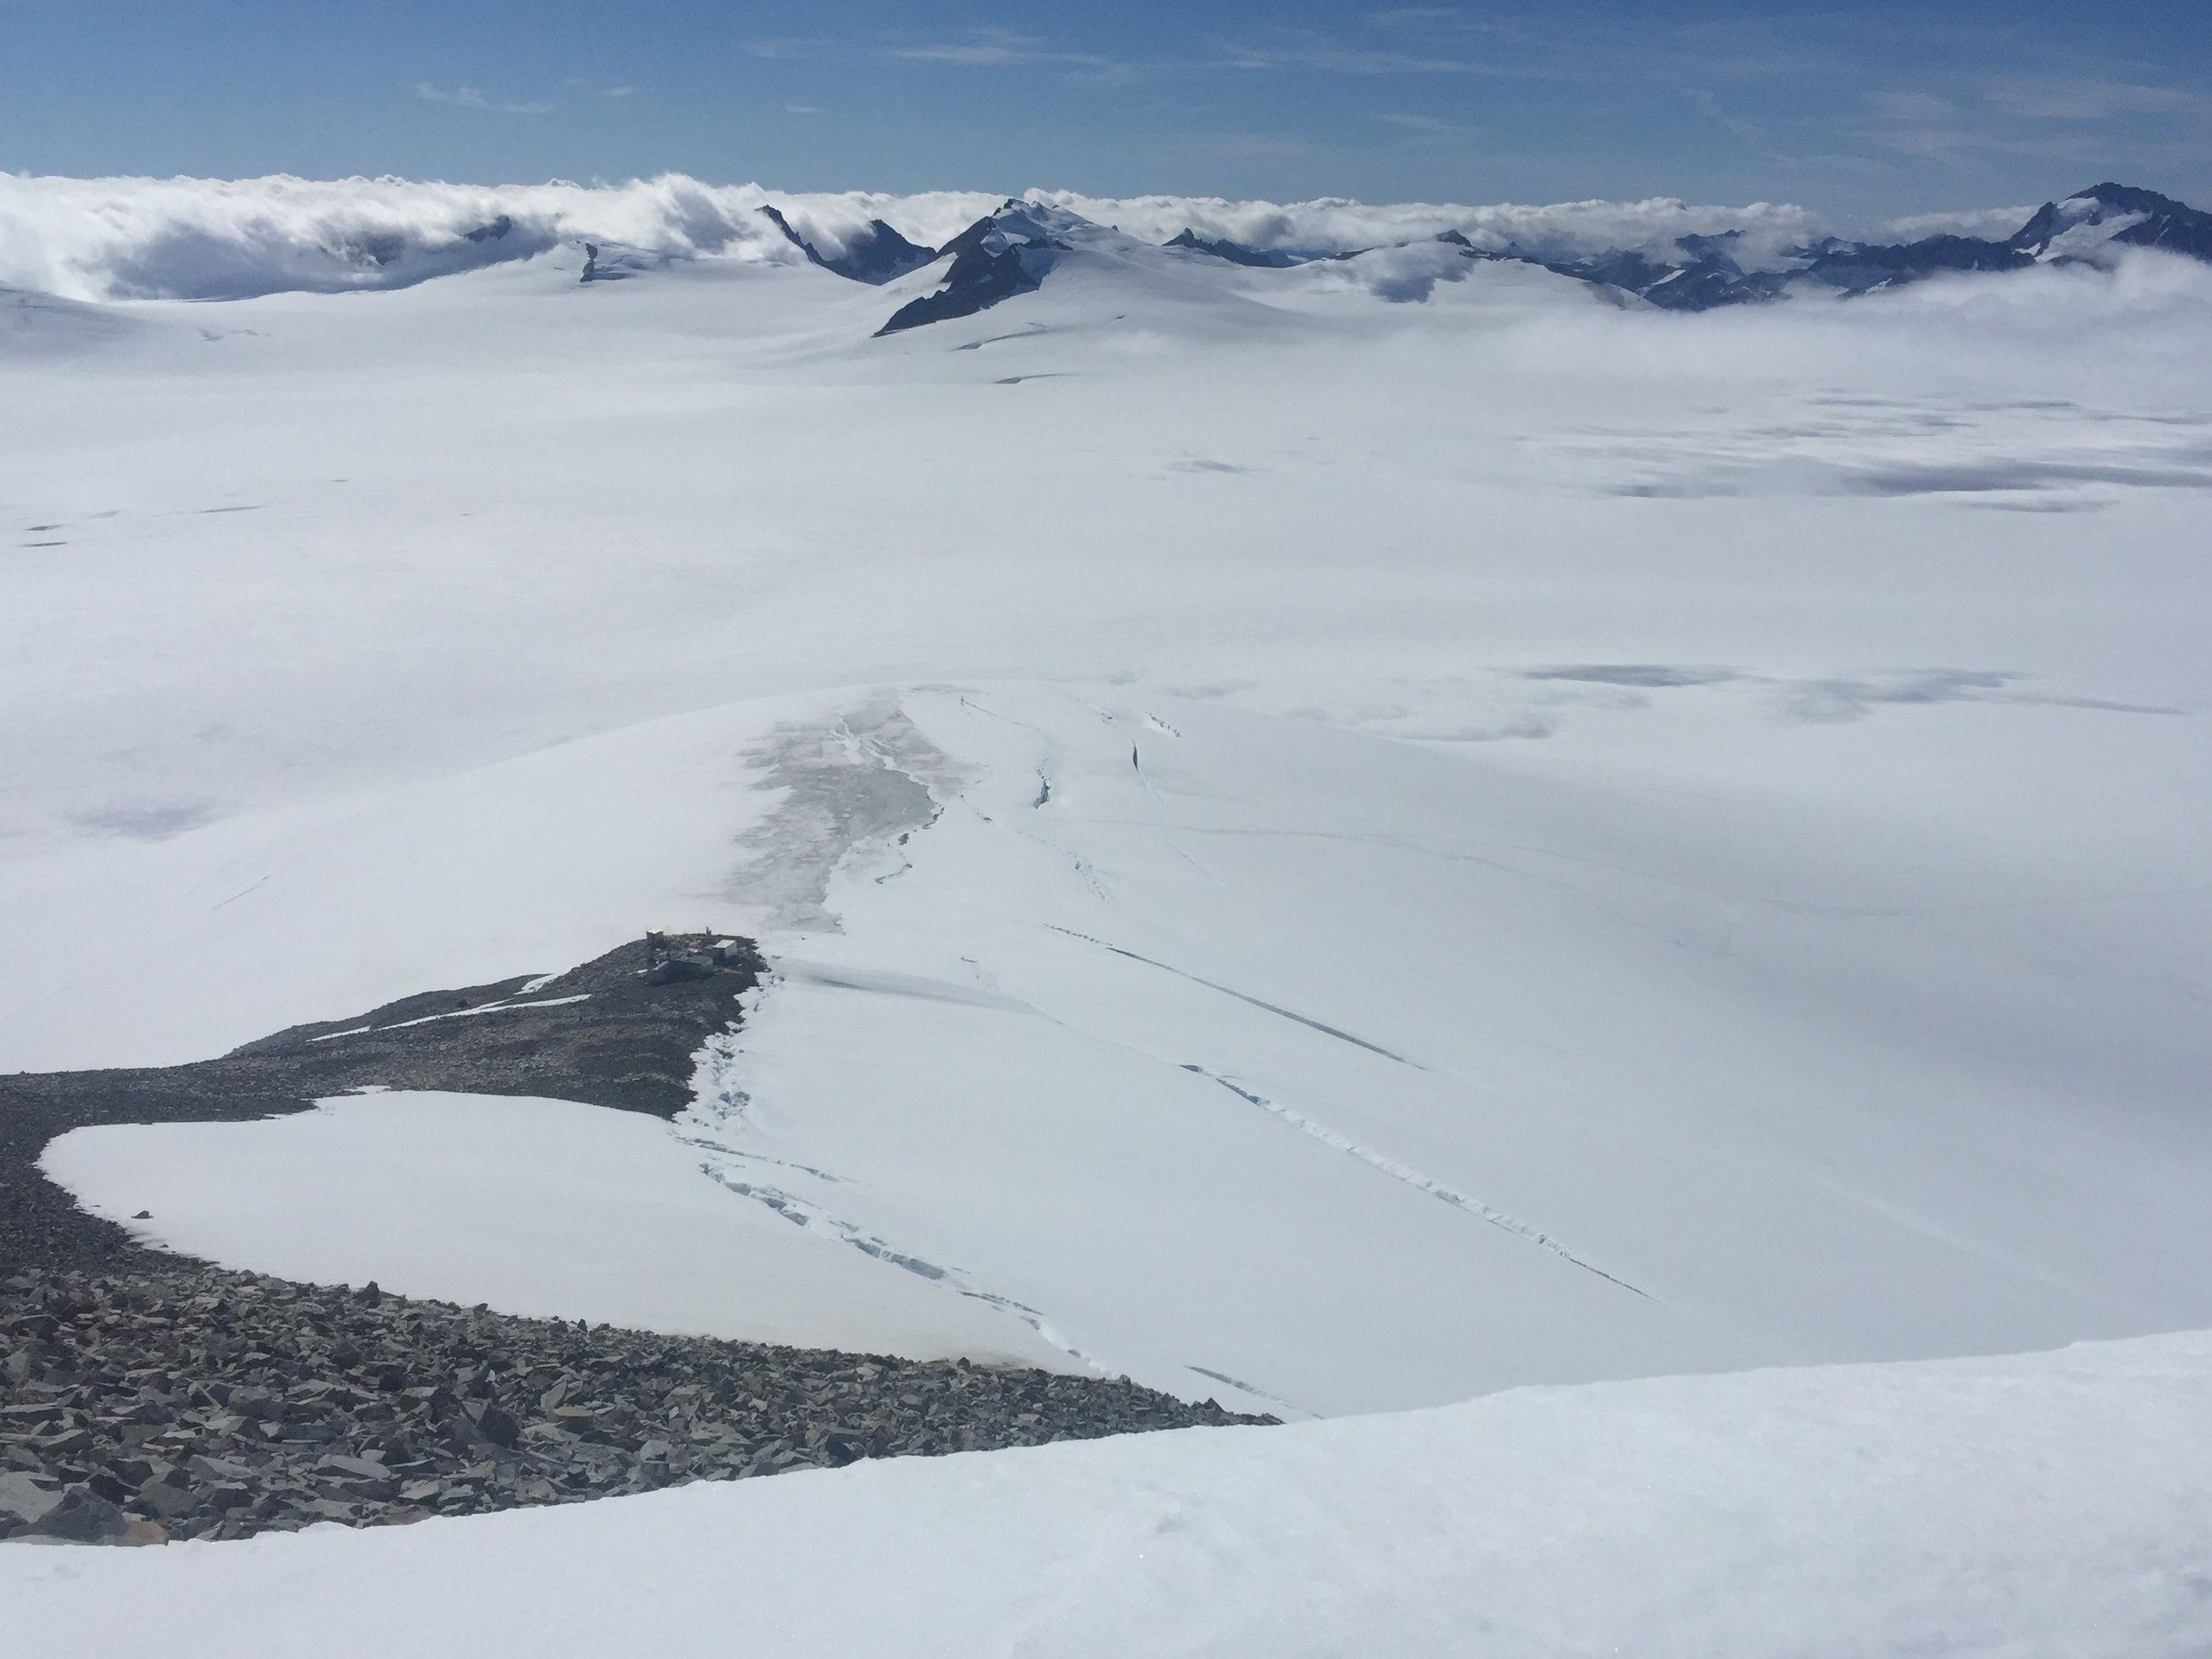 A view from the top of Mount Moore looking down on C8 and the route through the bergschrunds and crevasses. Photo: Amy Towell.